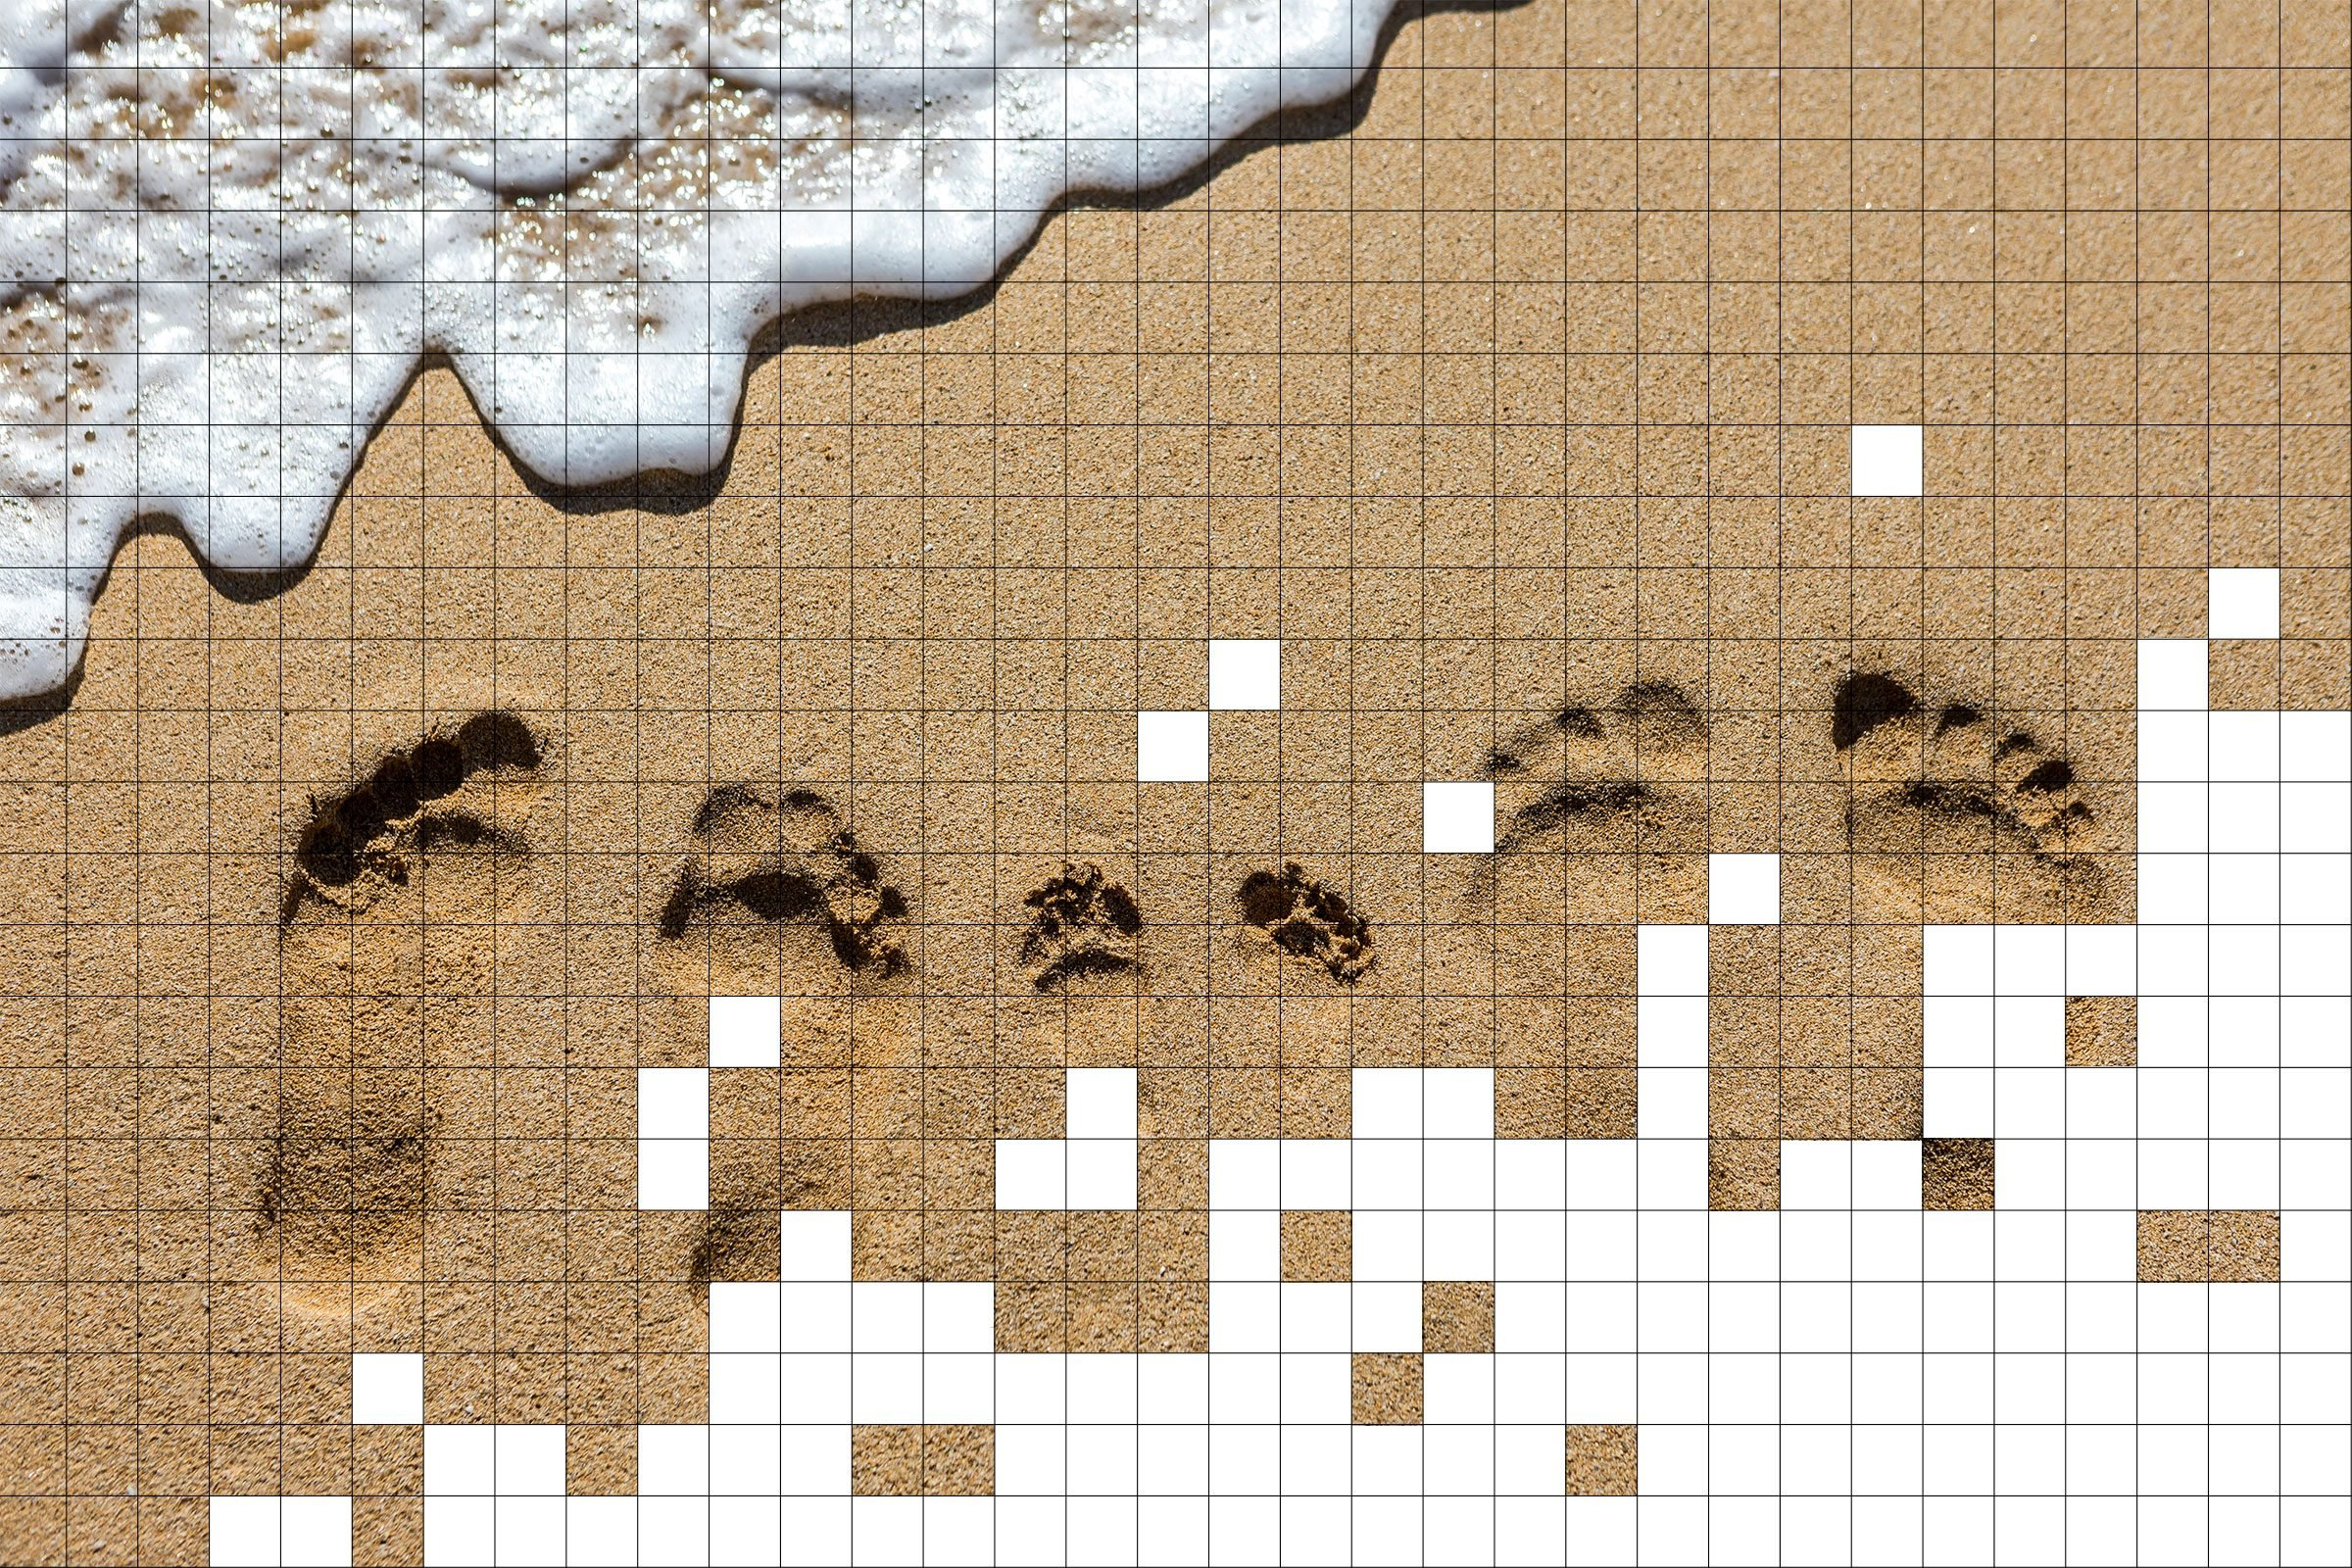 family footprints in the sand with grid pixels overlay